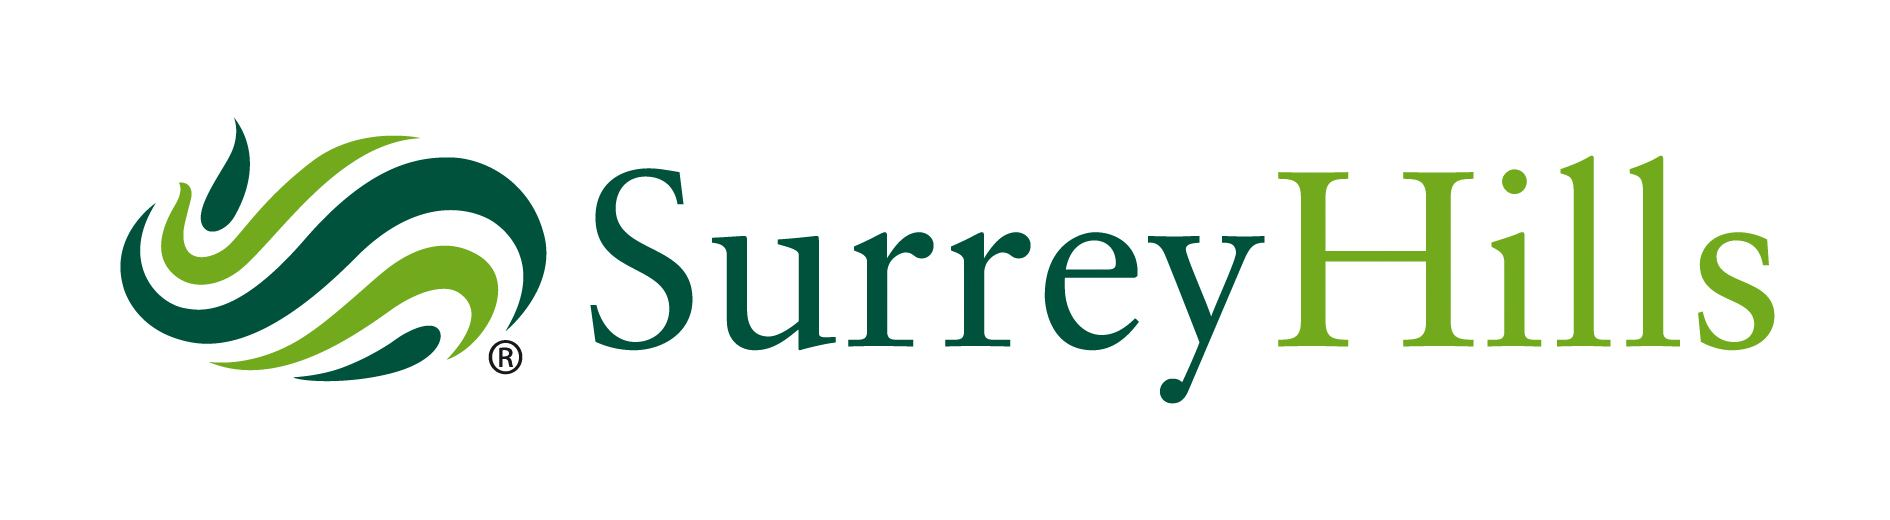 Surrey Hills associated with Hart Brown, Surrey and London legal specialists